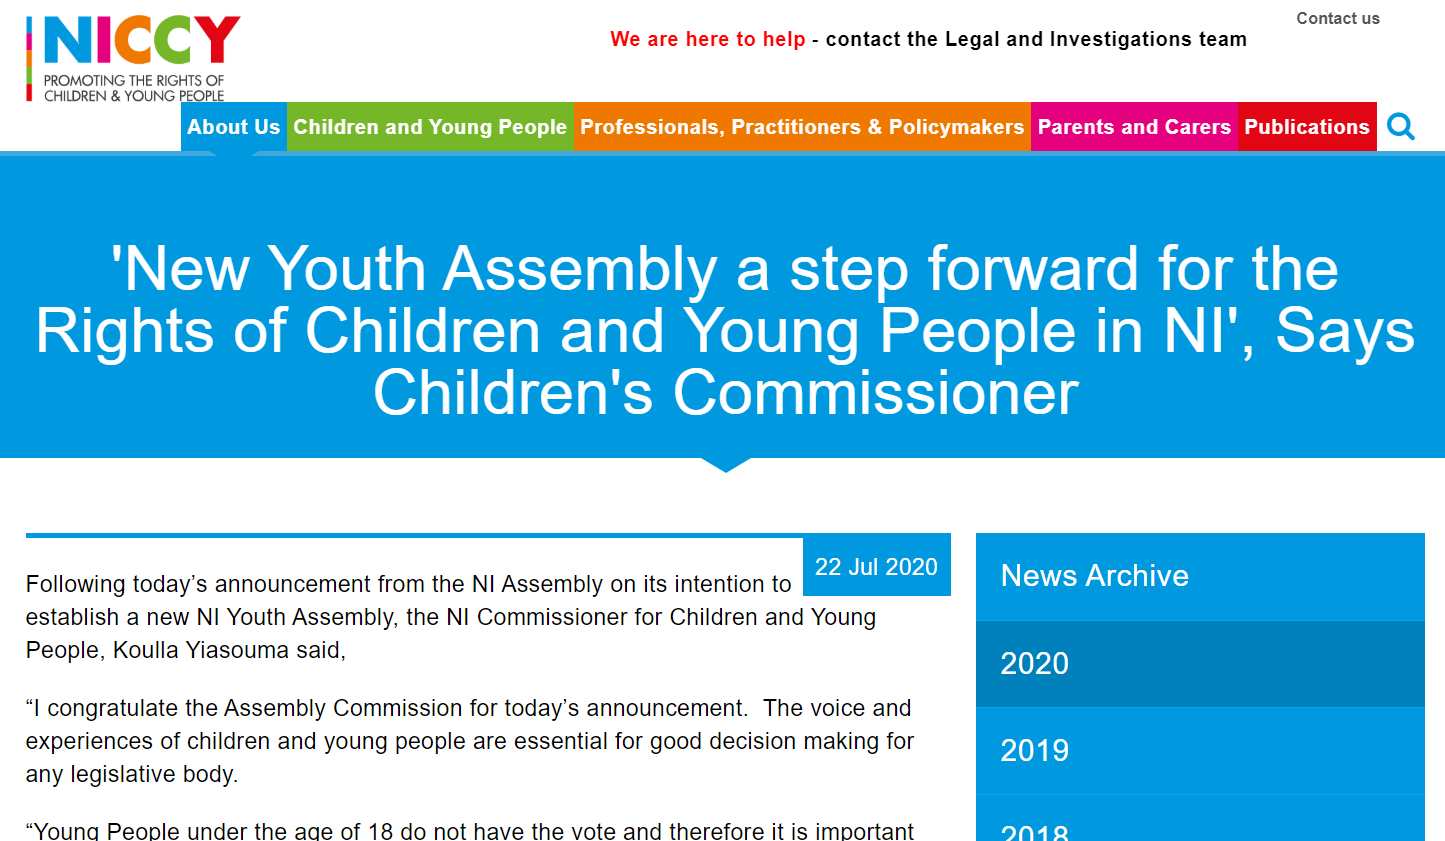 Image of 'New Youth Assembly a step forward for the Rights of Children and Young People in NI', Says Children's Commissioner